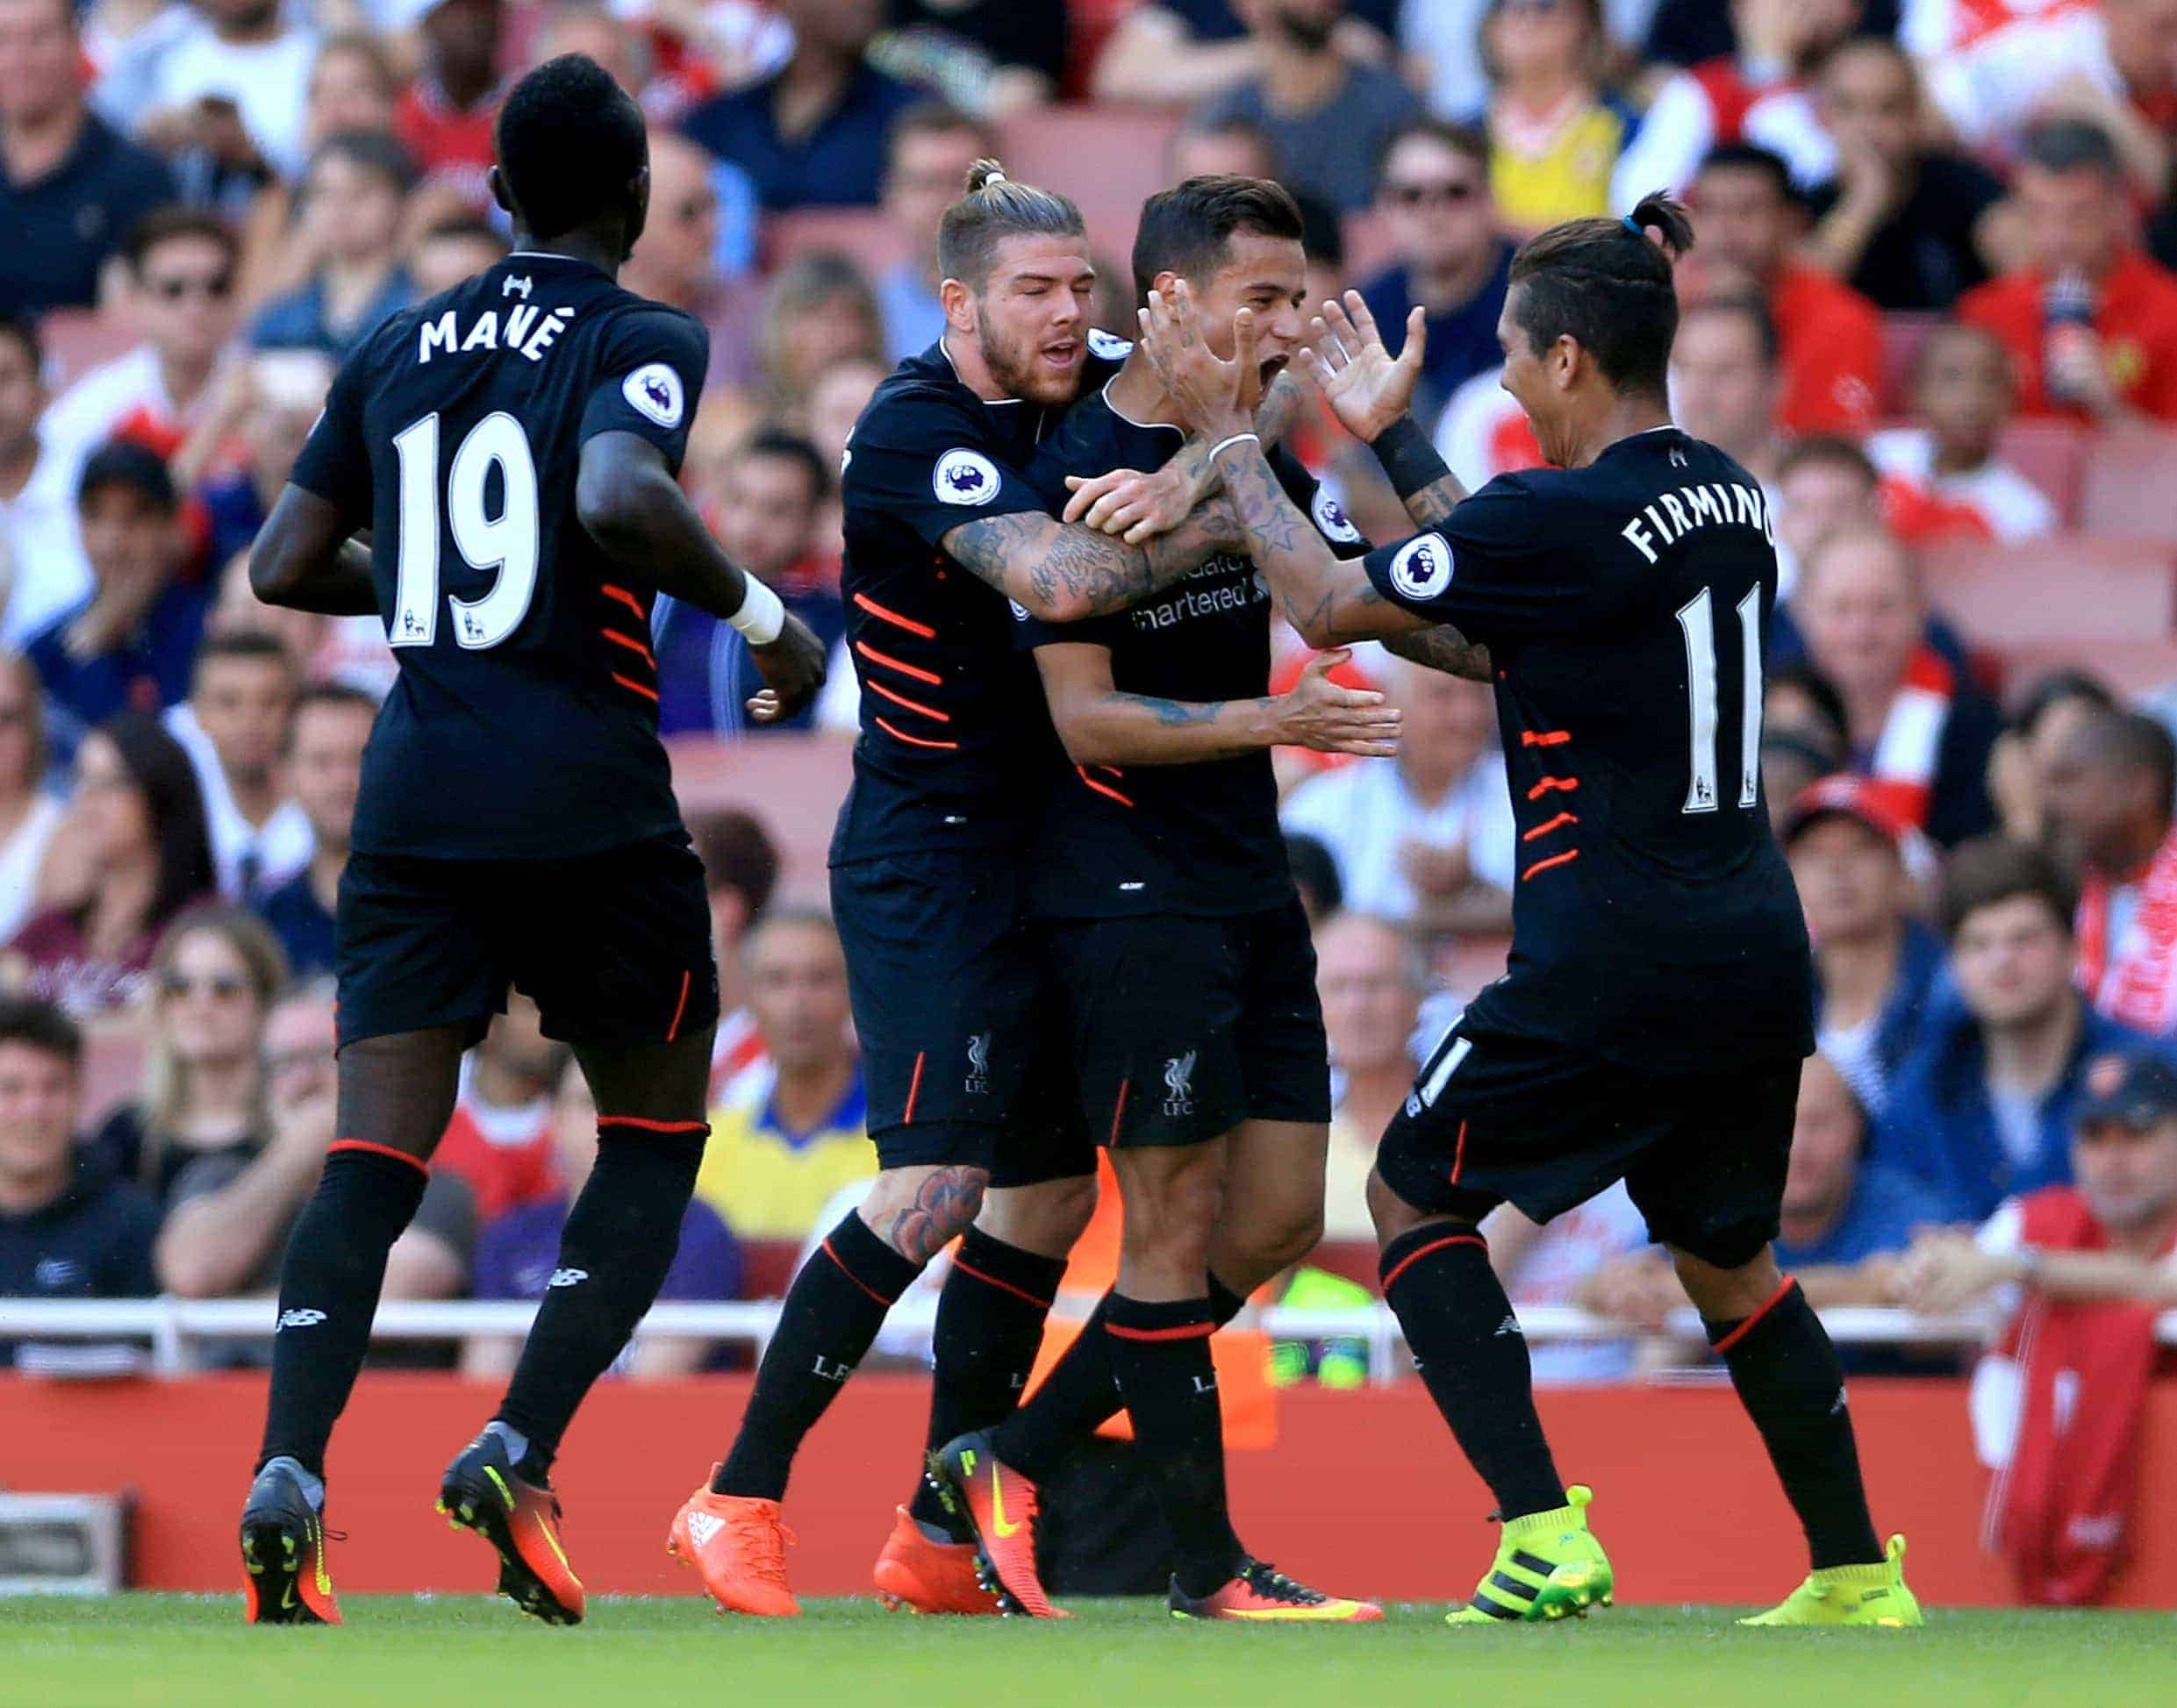 Picture by: Nigel French / EMPICS Sport Liverpool's Philippe Coutinho (second right) celebrates scoring his side's first goal of the game with team-mates